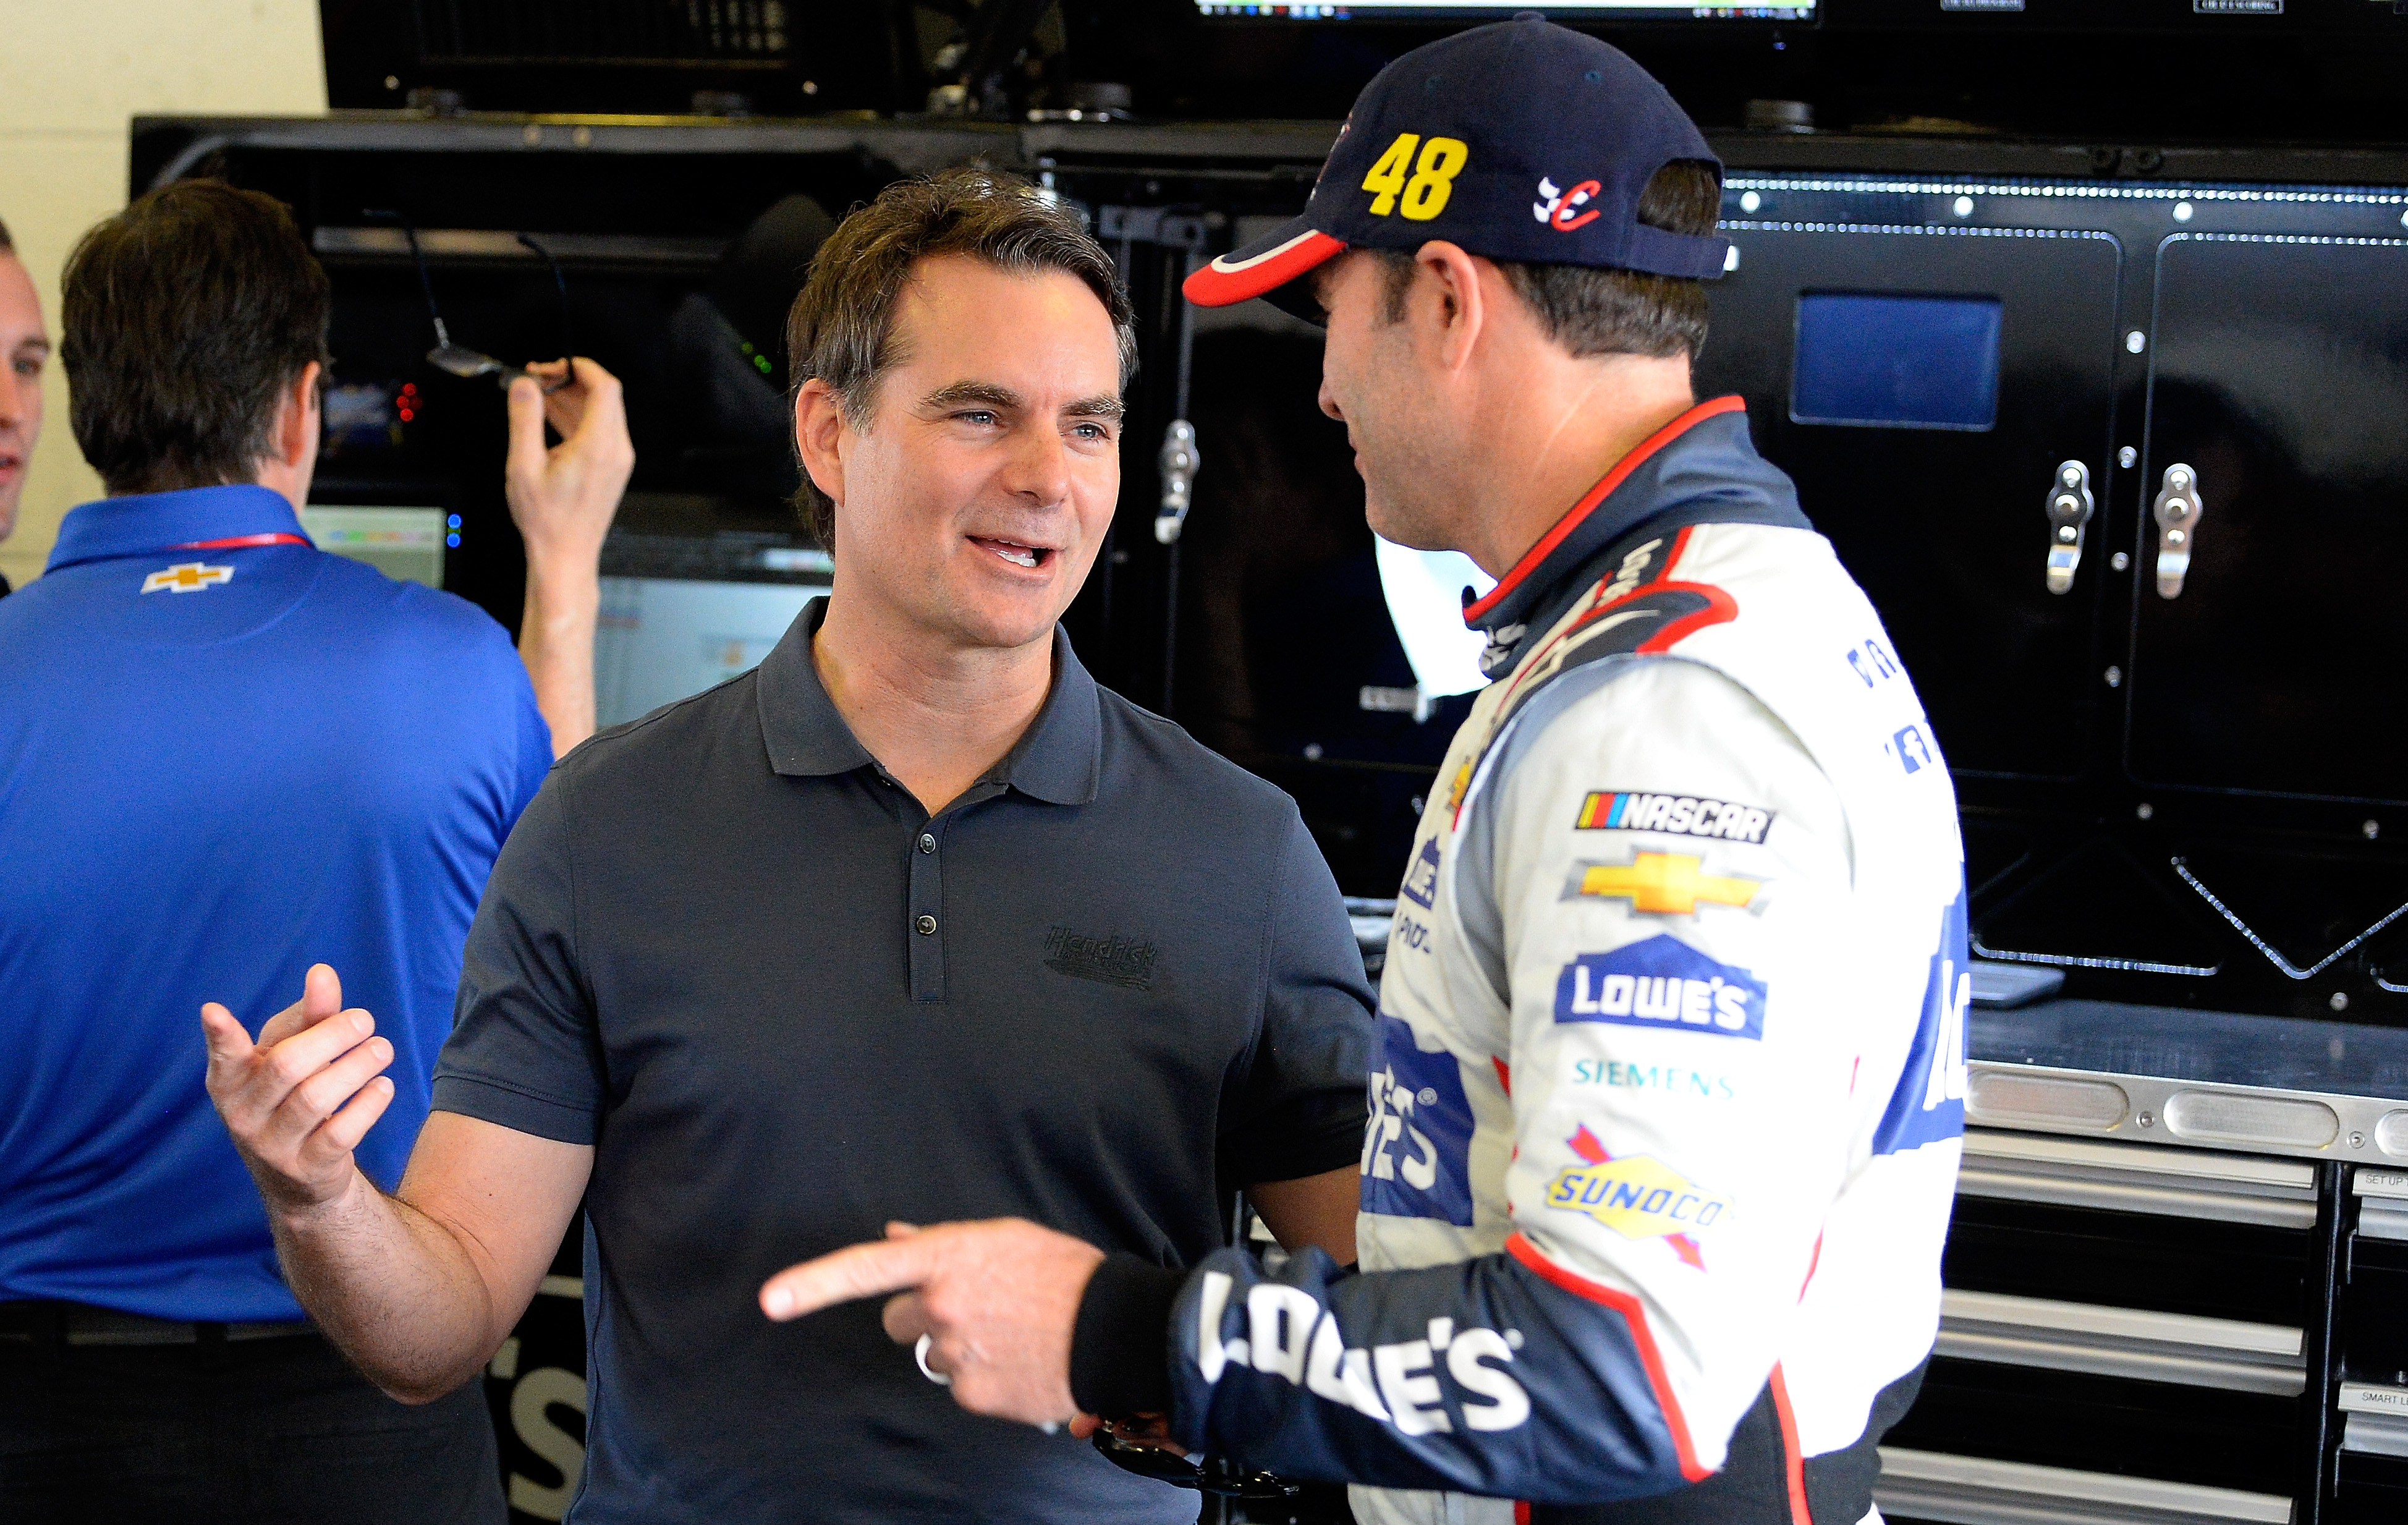 Jeff Gordon Spent Nearly $10 Million Attempting to Maintain Total Privacy at the Height of His NASCAR Career